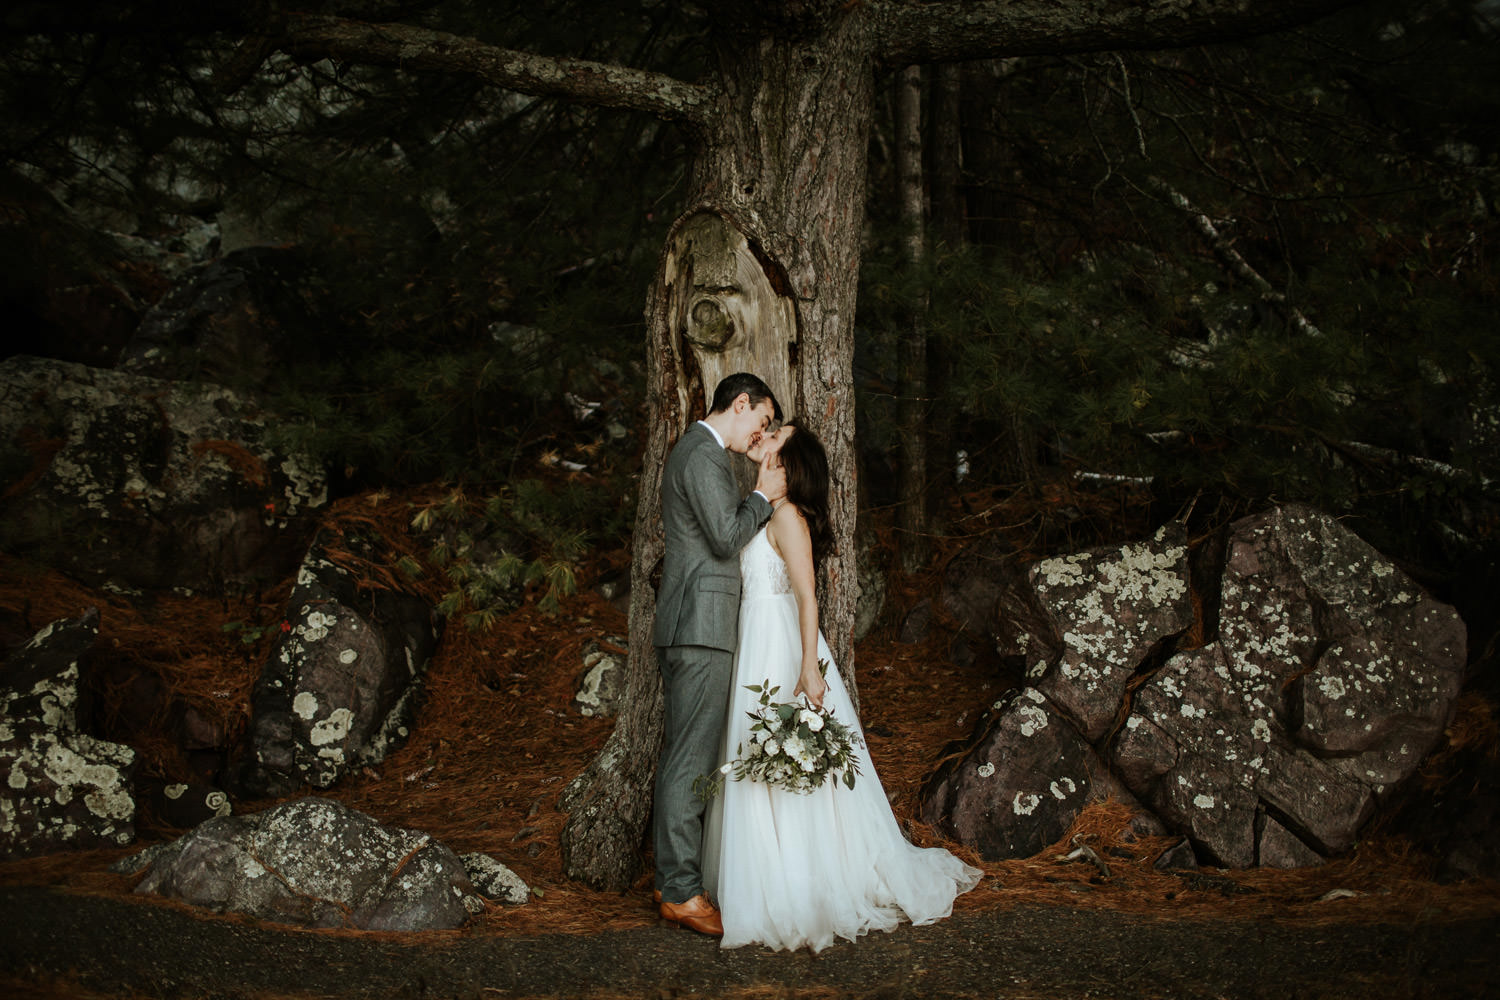 bride and groom kiss at devil's lake state park in Wisconsin. The wedding photographed by Mark Trela Photography